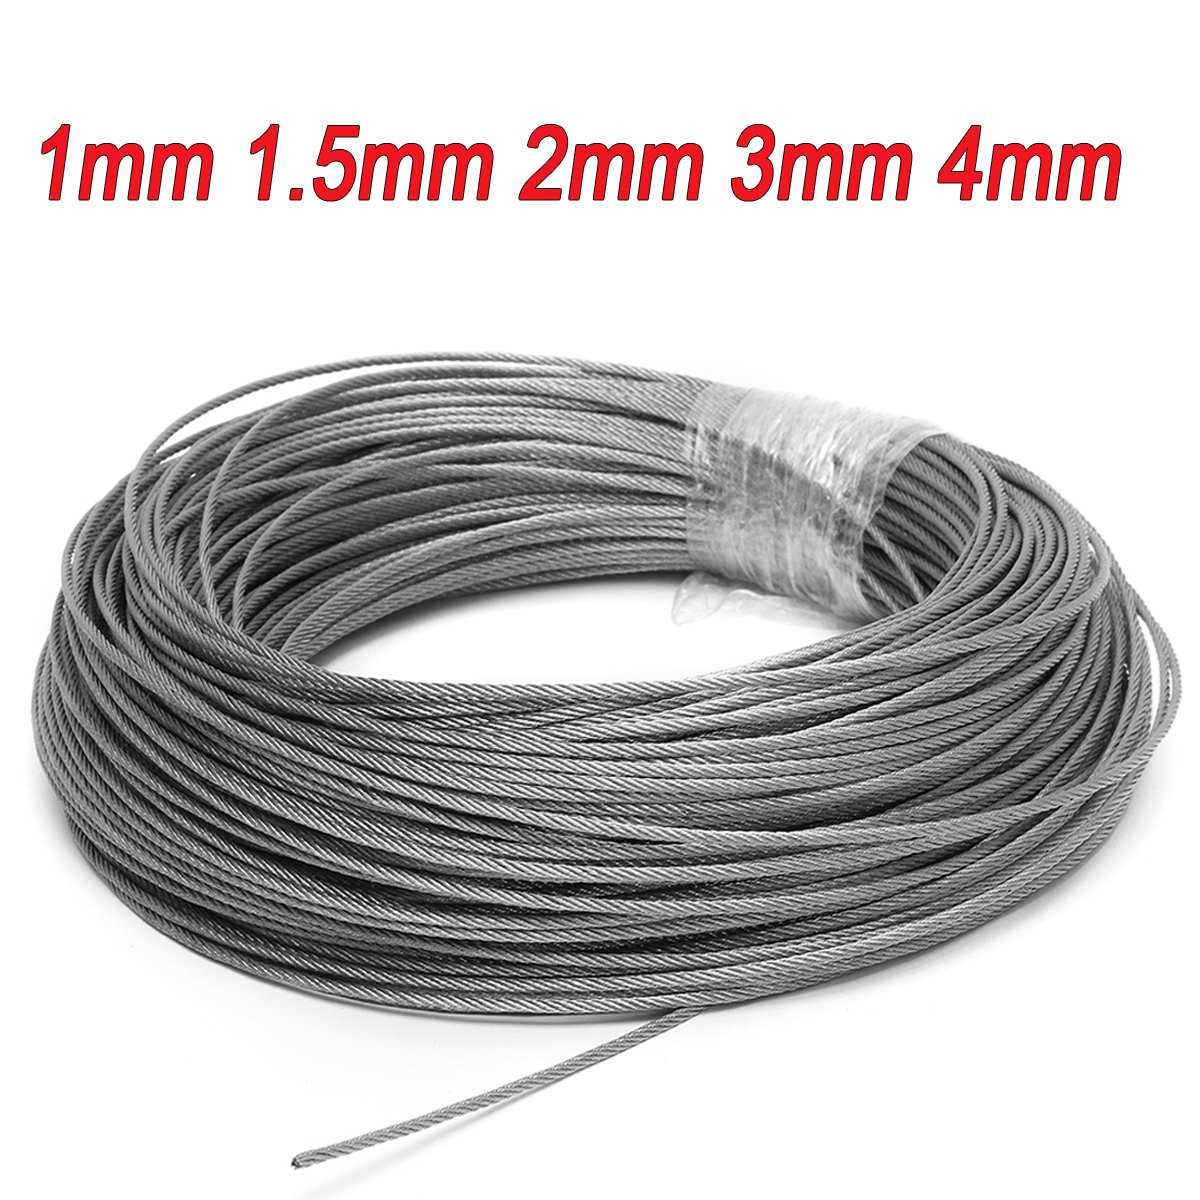 50M 100M 1mm 1 5mm 2mm diameter 304 stainless steel wire rope fishing lifting cable line Clothesline 7X7 Structure 1 1 5 2mm